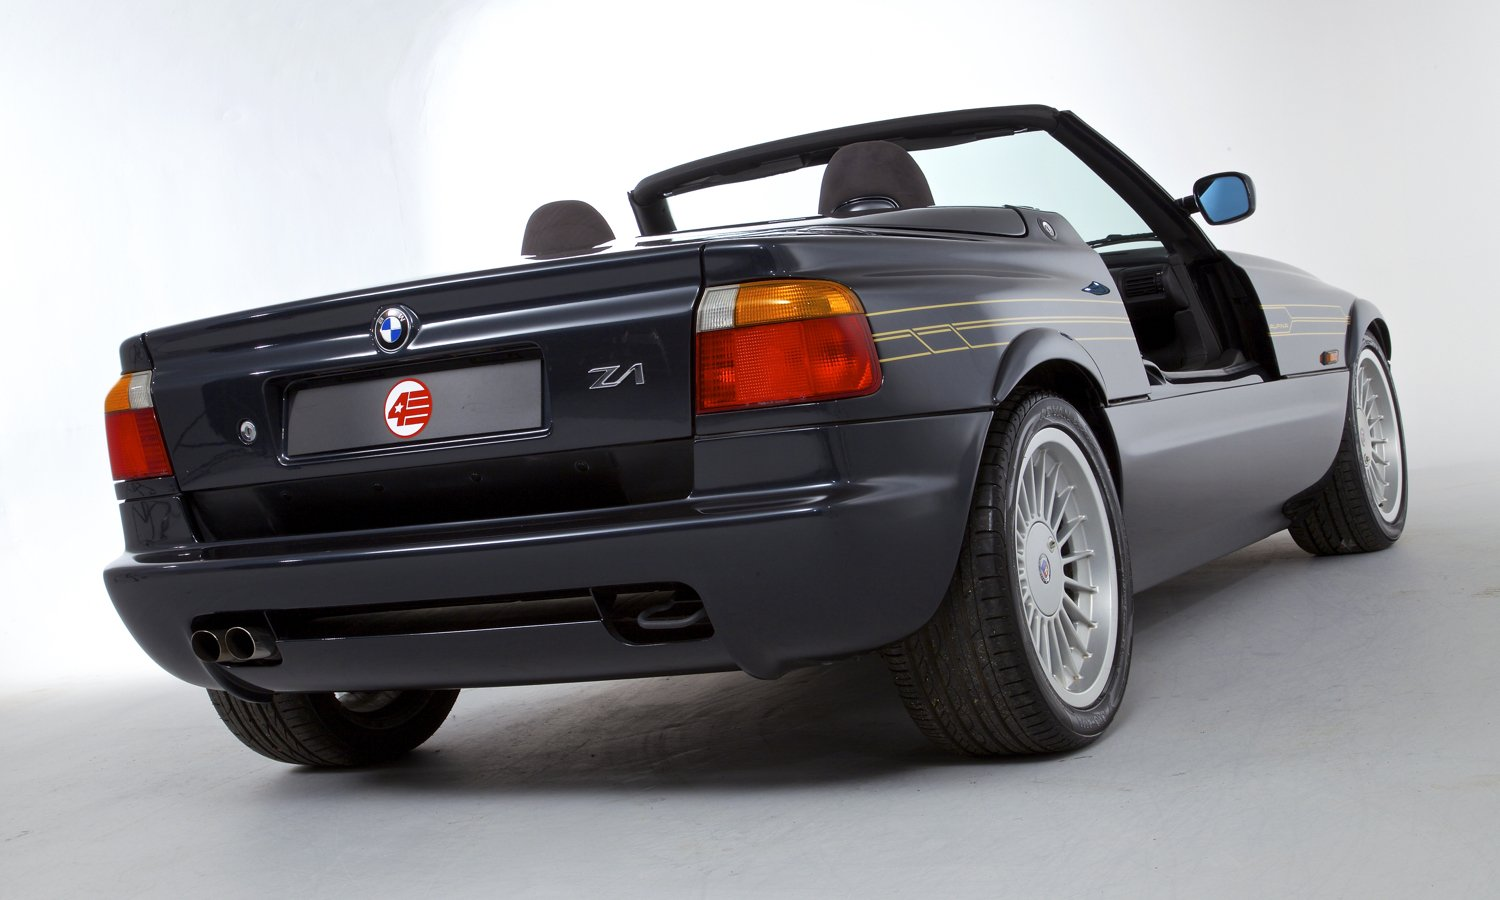 alpina roadster limited edition bmw z1 cars modified wallpaper 1500x900 694321 wallpaperup. Black Bedroom Furniture Sets. Home Design Ideas